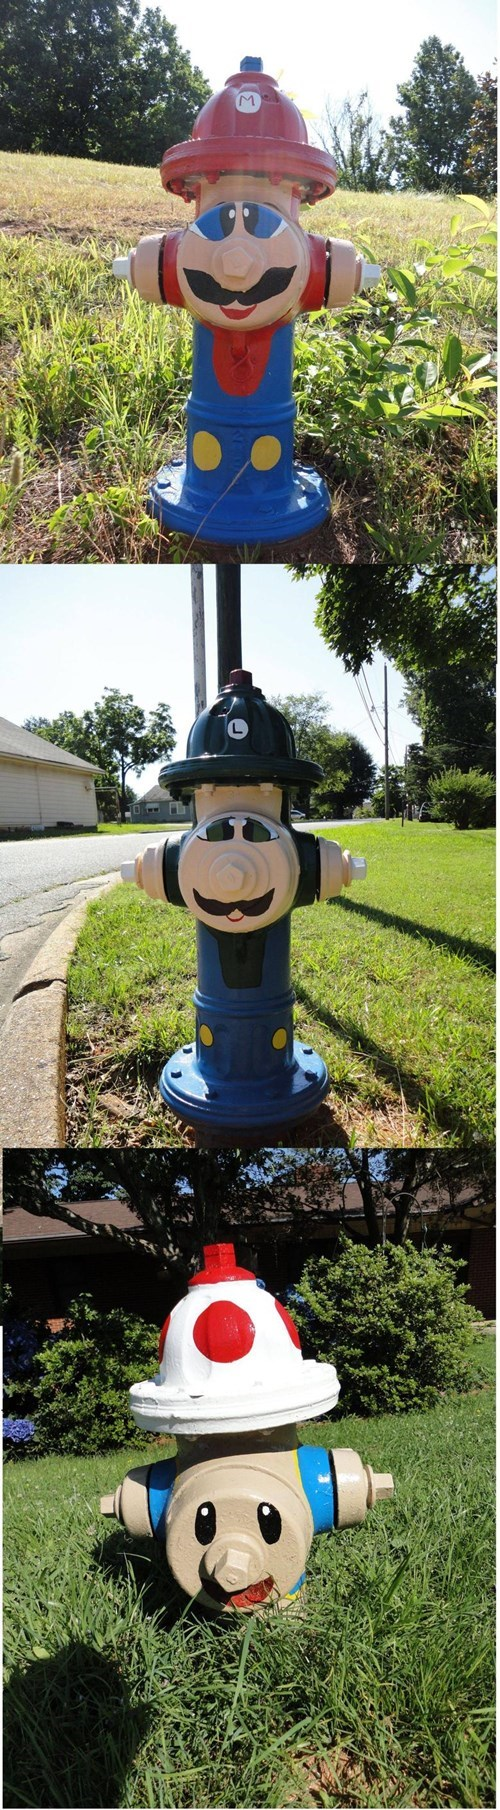 firefighters fire hydrant mario